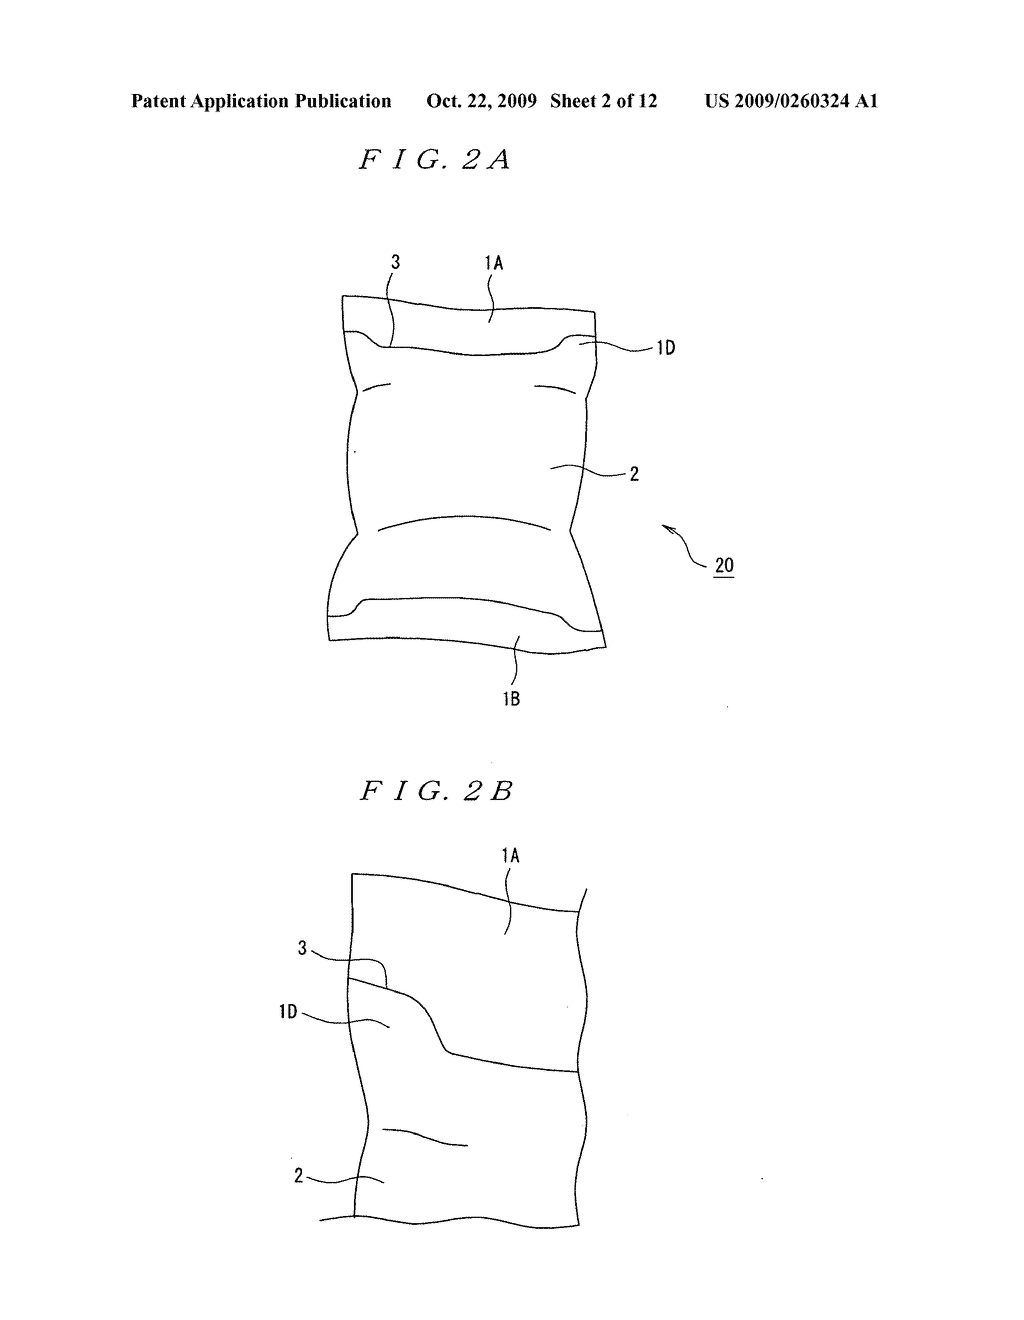 Pillow Packaging Bag, Pillow Type Packaged Body, Heat Seal Bar for Pillow Packaging Machine, and Pillow Packaging Machine - diagram, schematic, and image 03